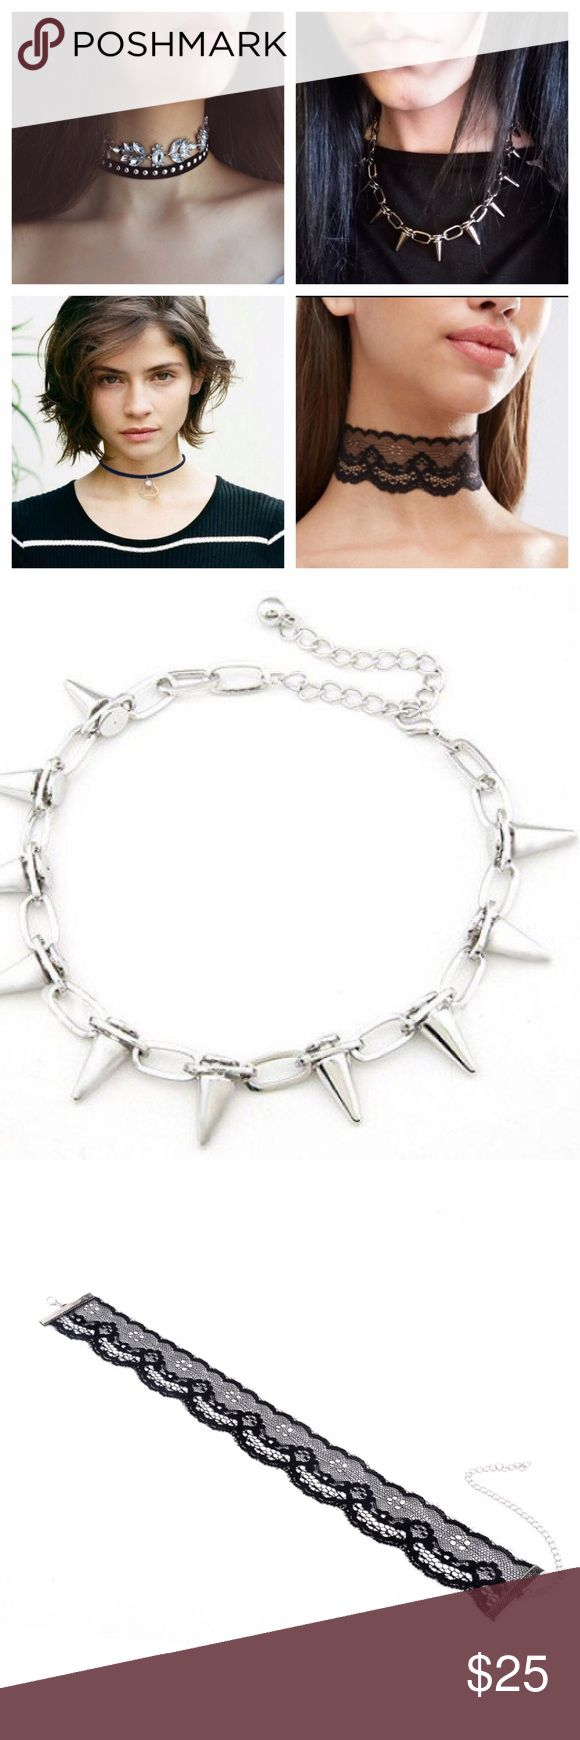 Trendy Bundle !! Hot !! Get all four chokers for the price listed! All trendy, sexy, and fashion ! Jewelry Necklaces